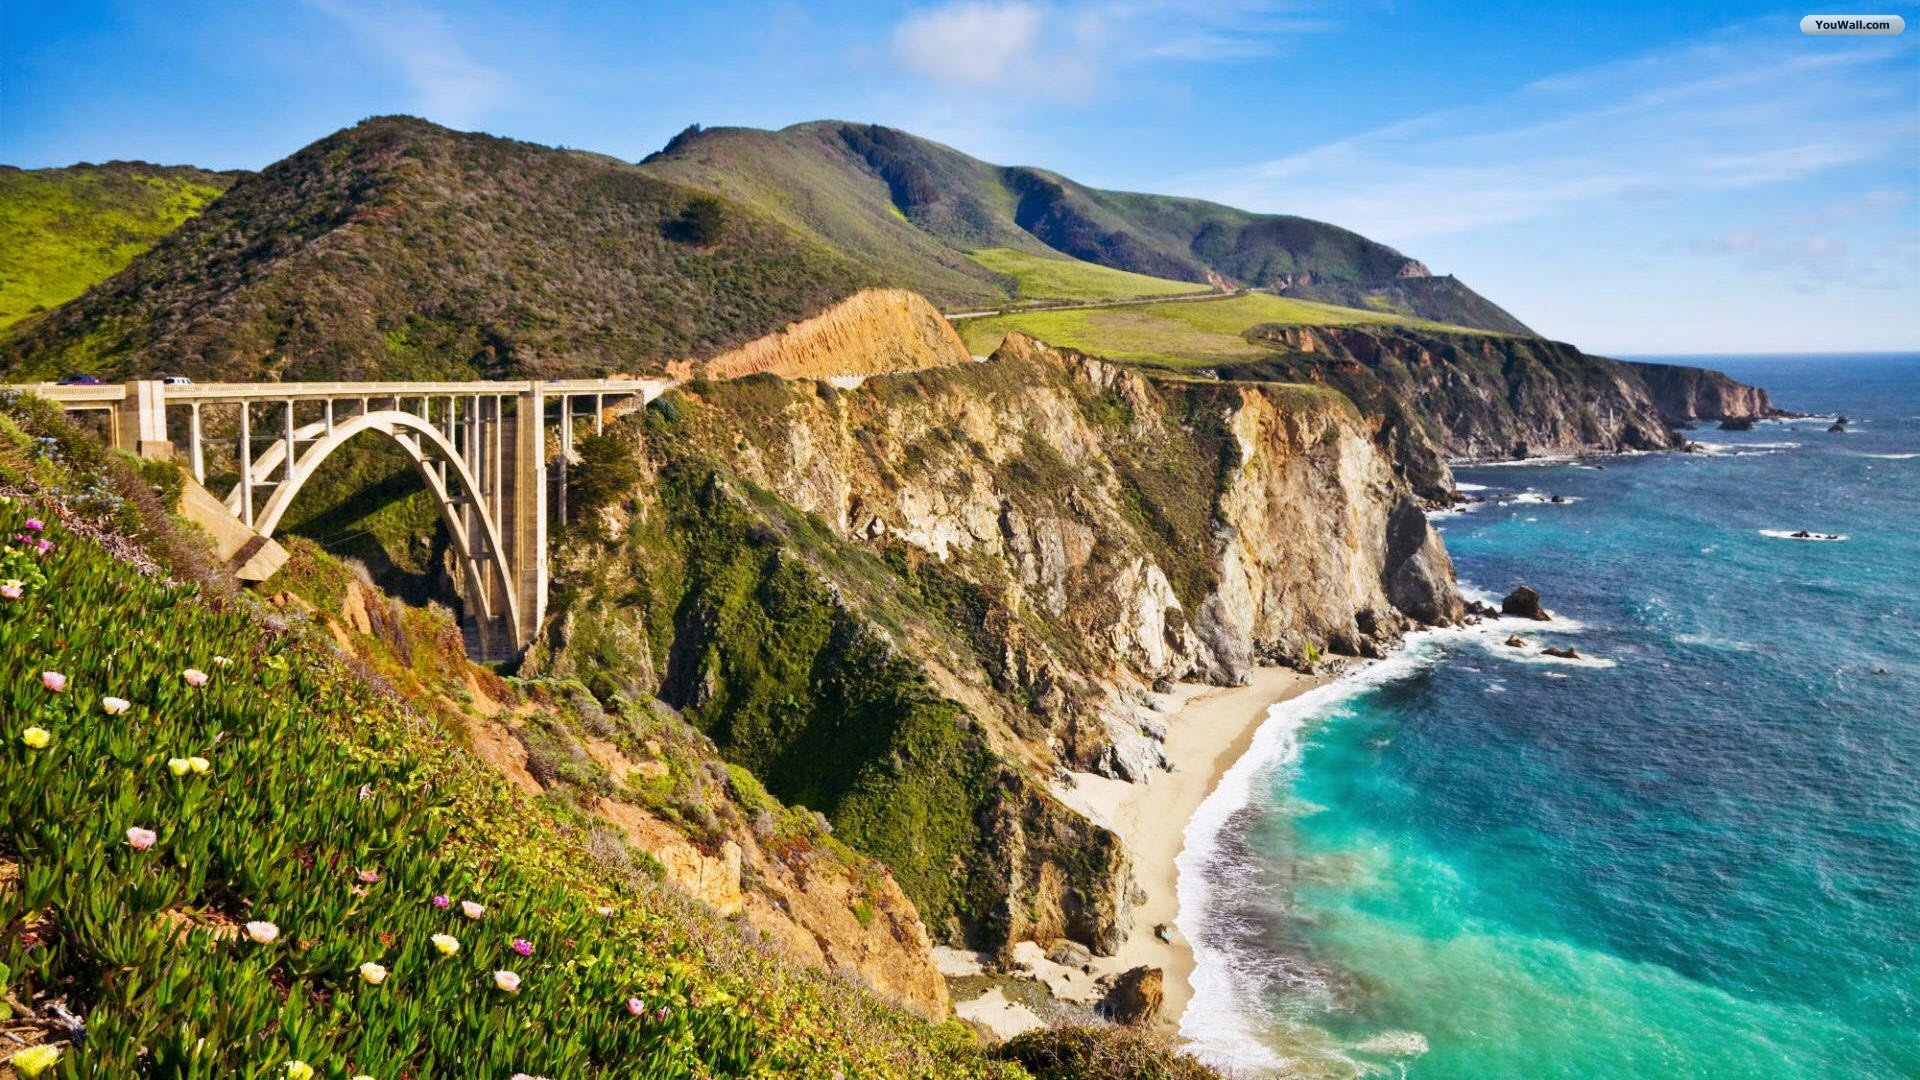 California coast wallpaper wallpapersafari - Code de reduction maison du monde ...